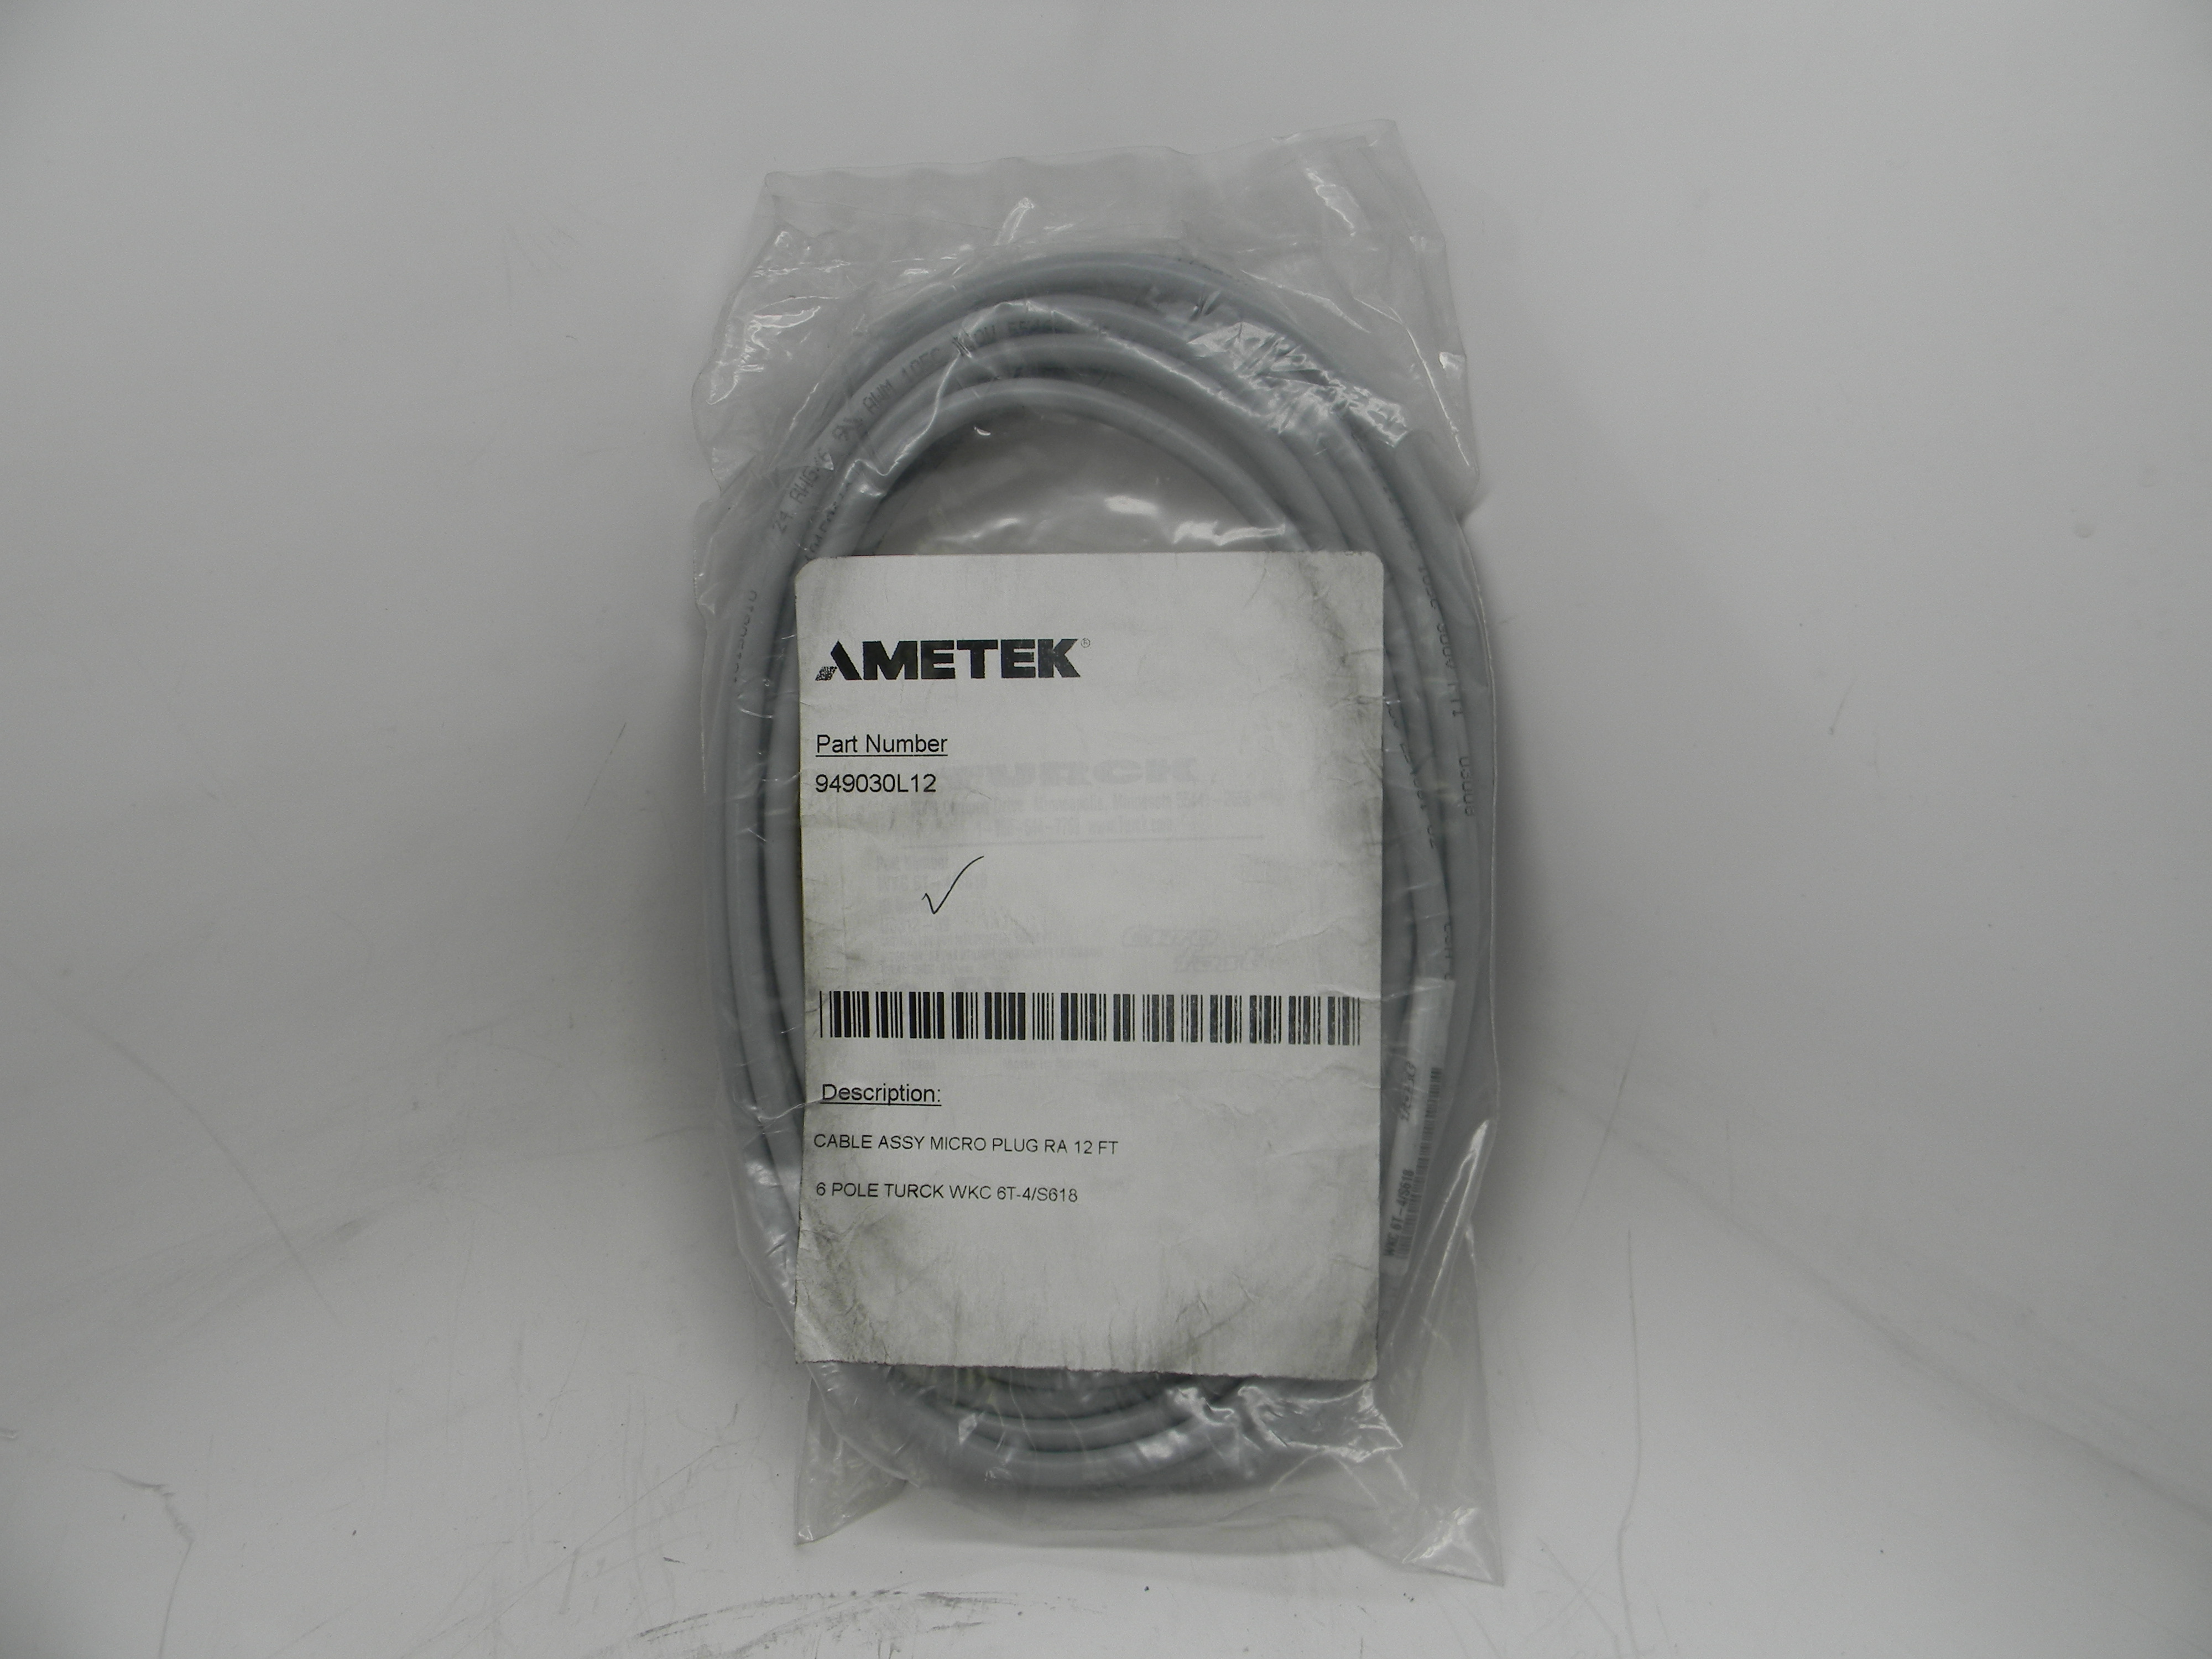 Straight Connector SD0439700L10 Ametek Gemco Cable Connector Assembly For a Rod Style LDT with a 10 Pin